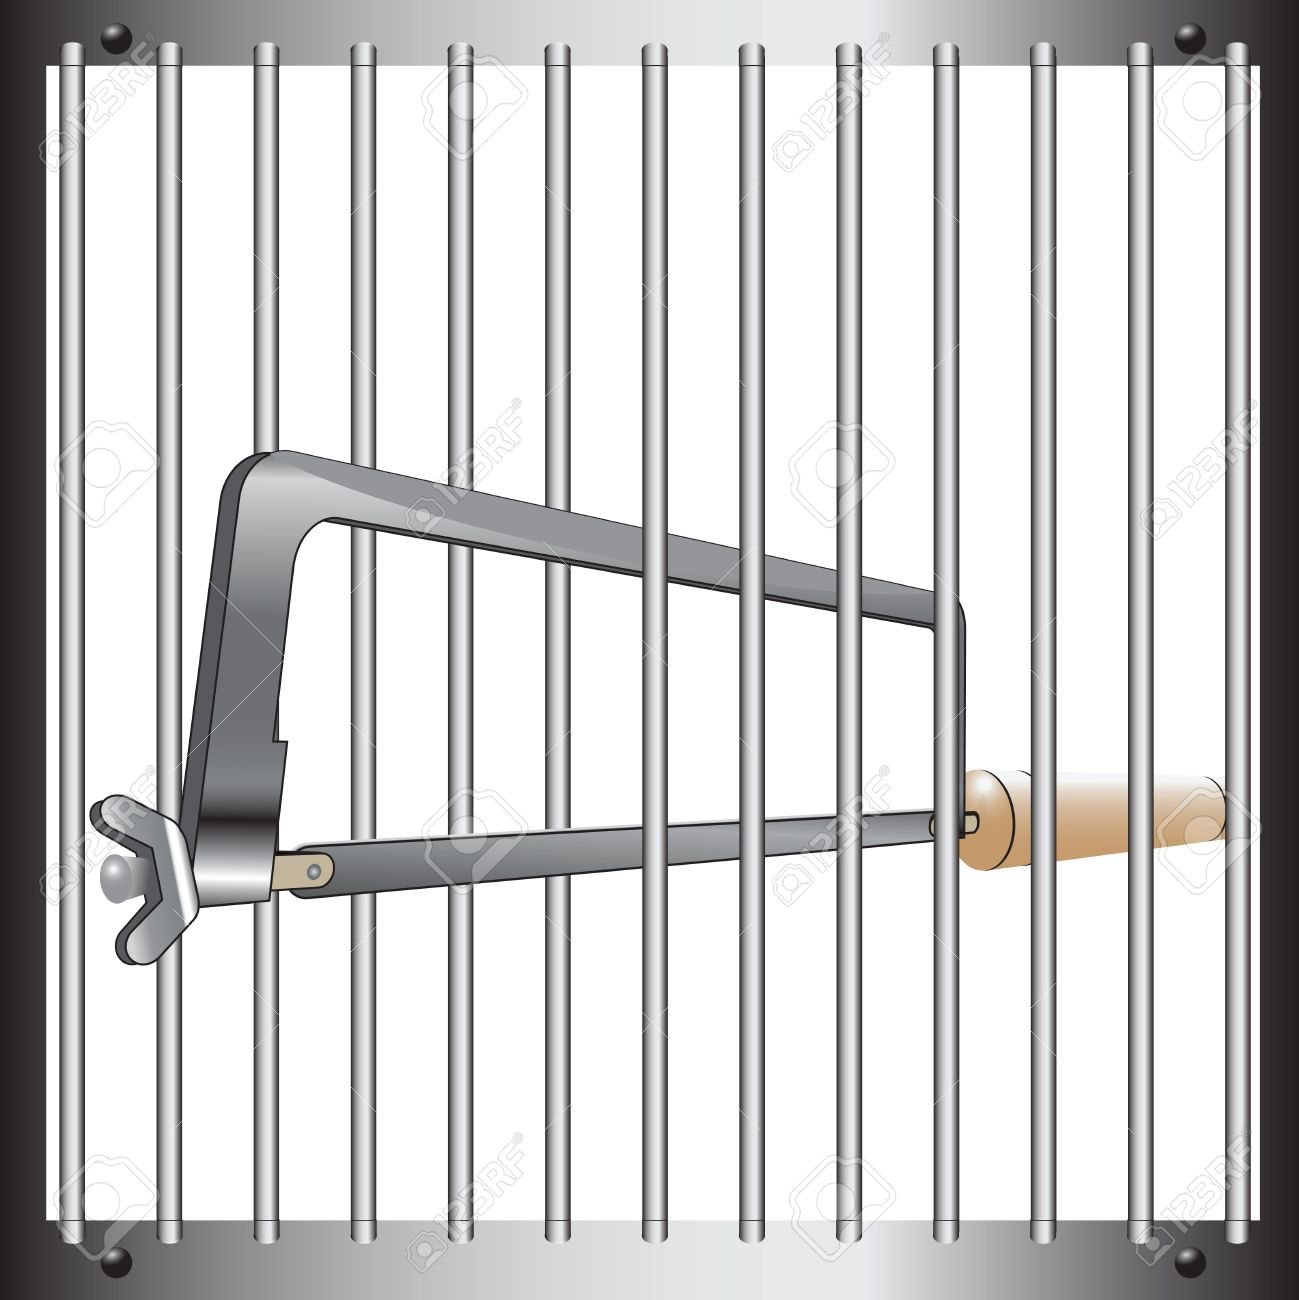 Jail Door Clip Art